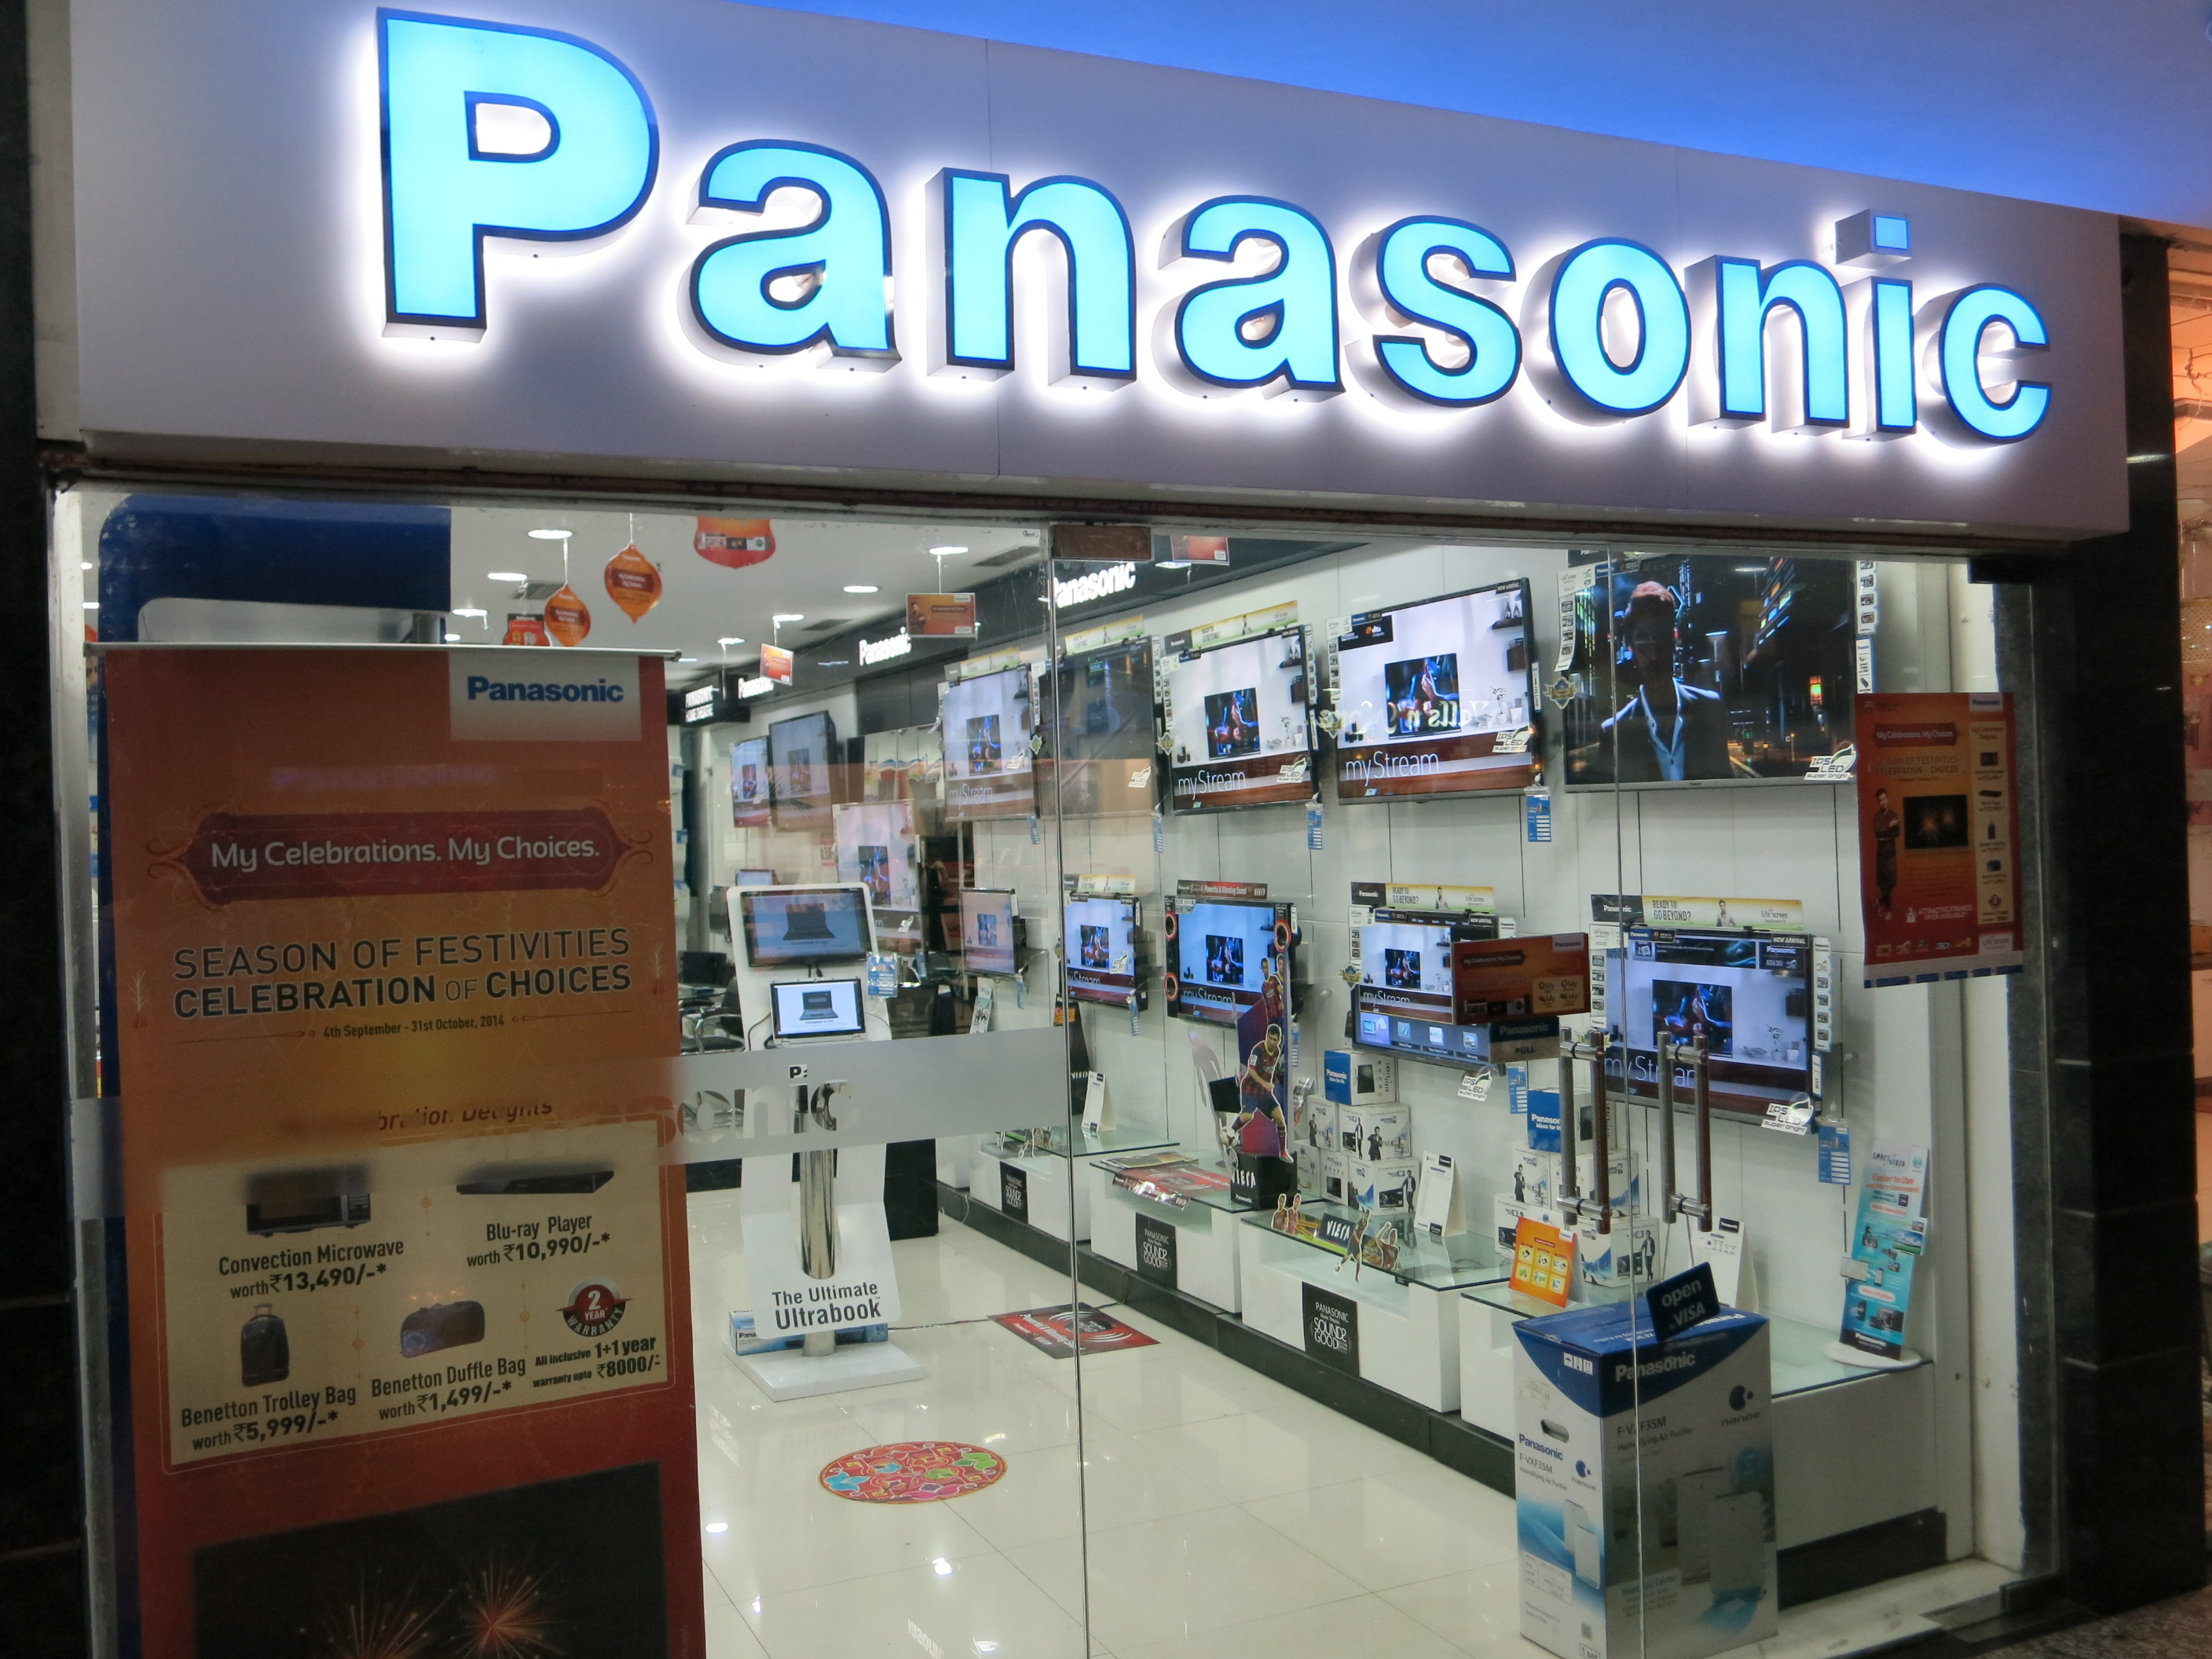 Panasonic Store locator Panasonic store locator displays list of stores in neighborhood, cities, states and countries. Database of Panasonic stores, factory stores and the easiest way to find Panasonic store locations, map, shopping hours and information about brand.